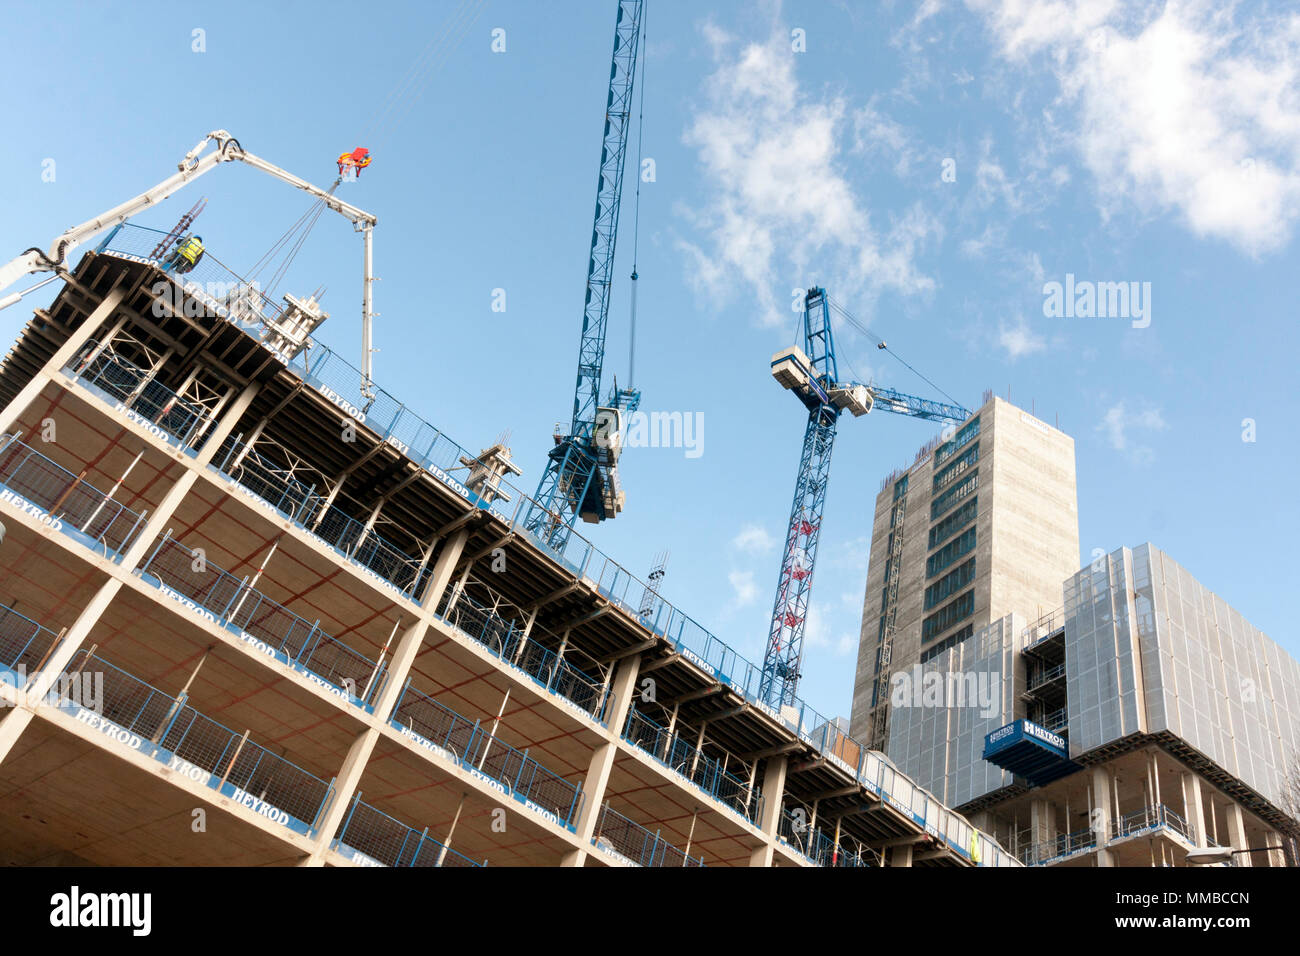 Construction Work Manchester - Stock Image